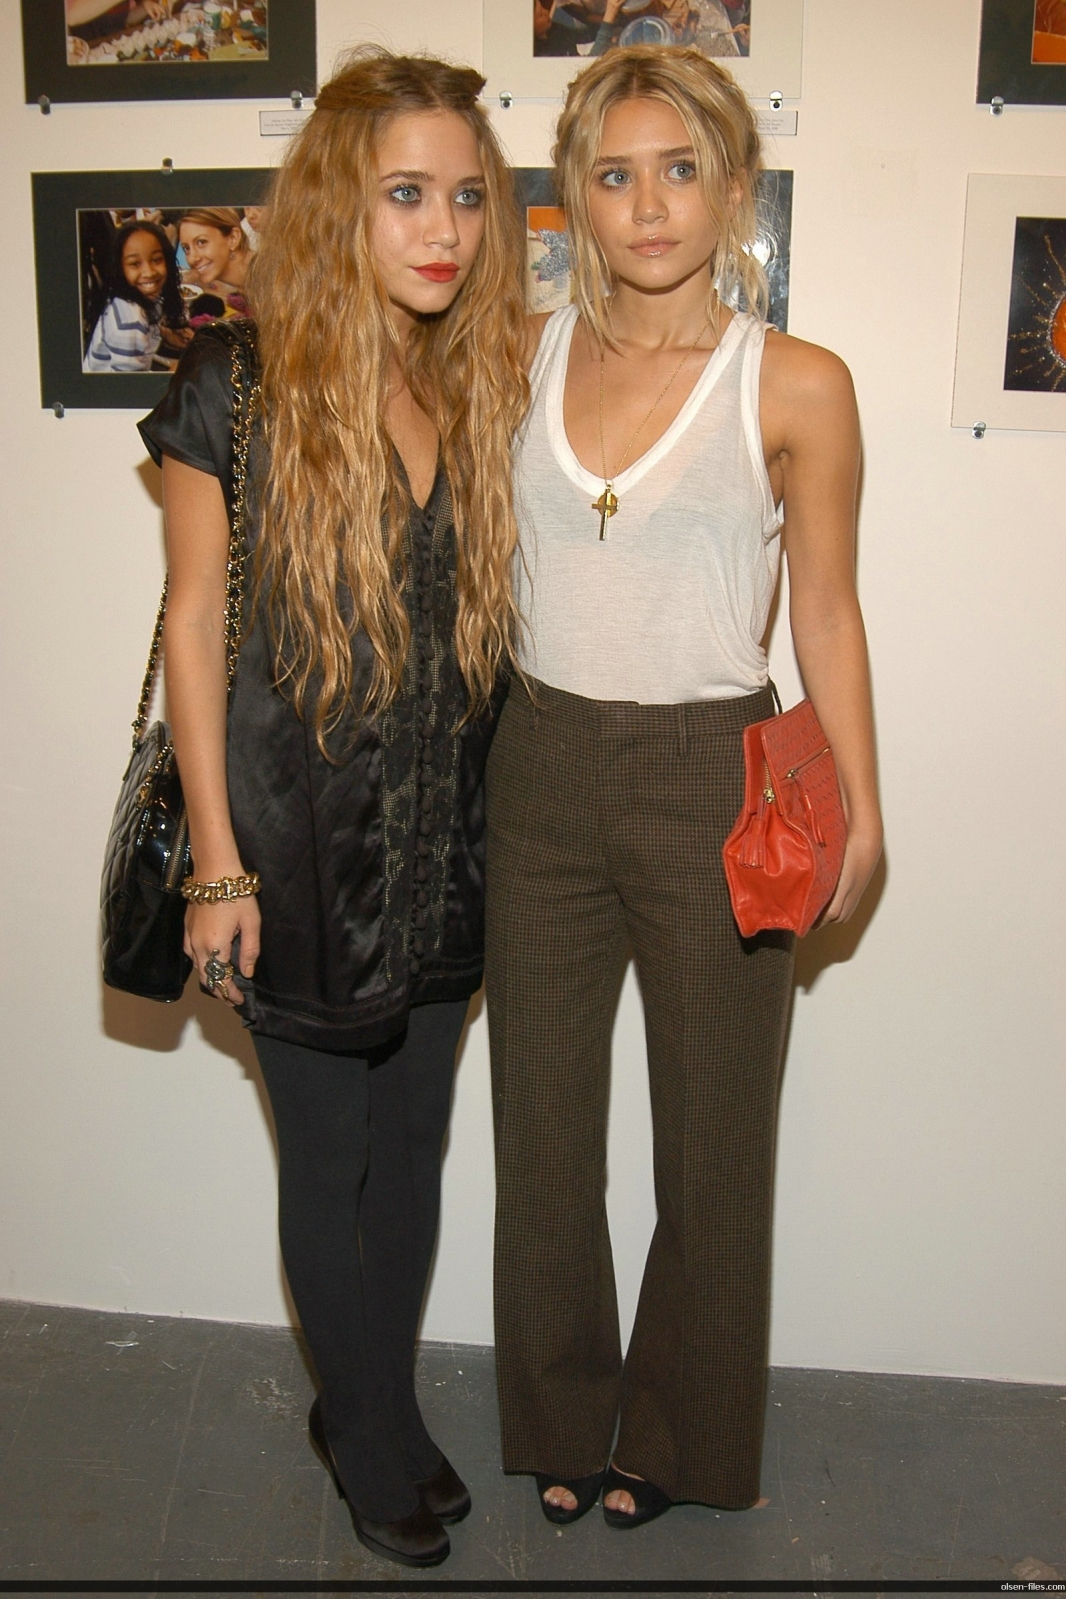 http://1.bp.blogspot.com/_jqDXCf91gfM/TJ7y0DhLlJI/AAAAAAAAAPc/A7konlj2eg4/s1600/mary-kate-and-ashley-olsen.jpg